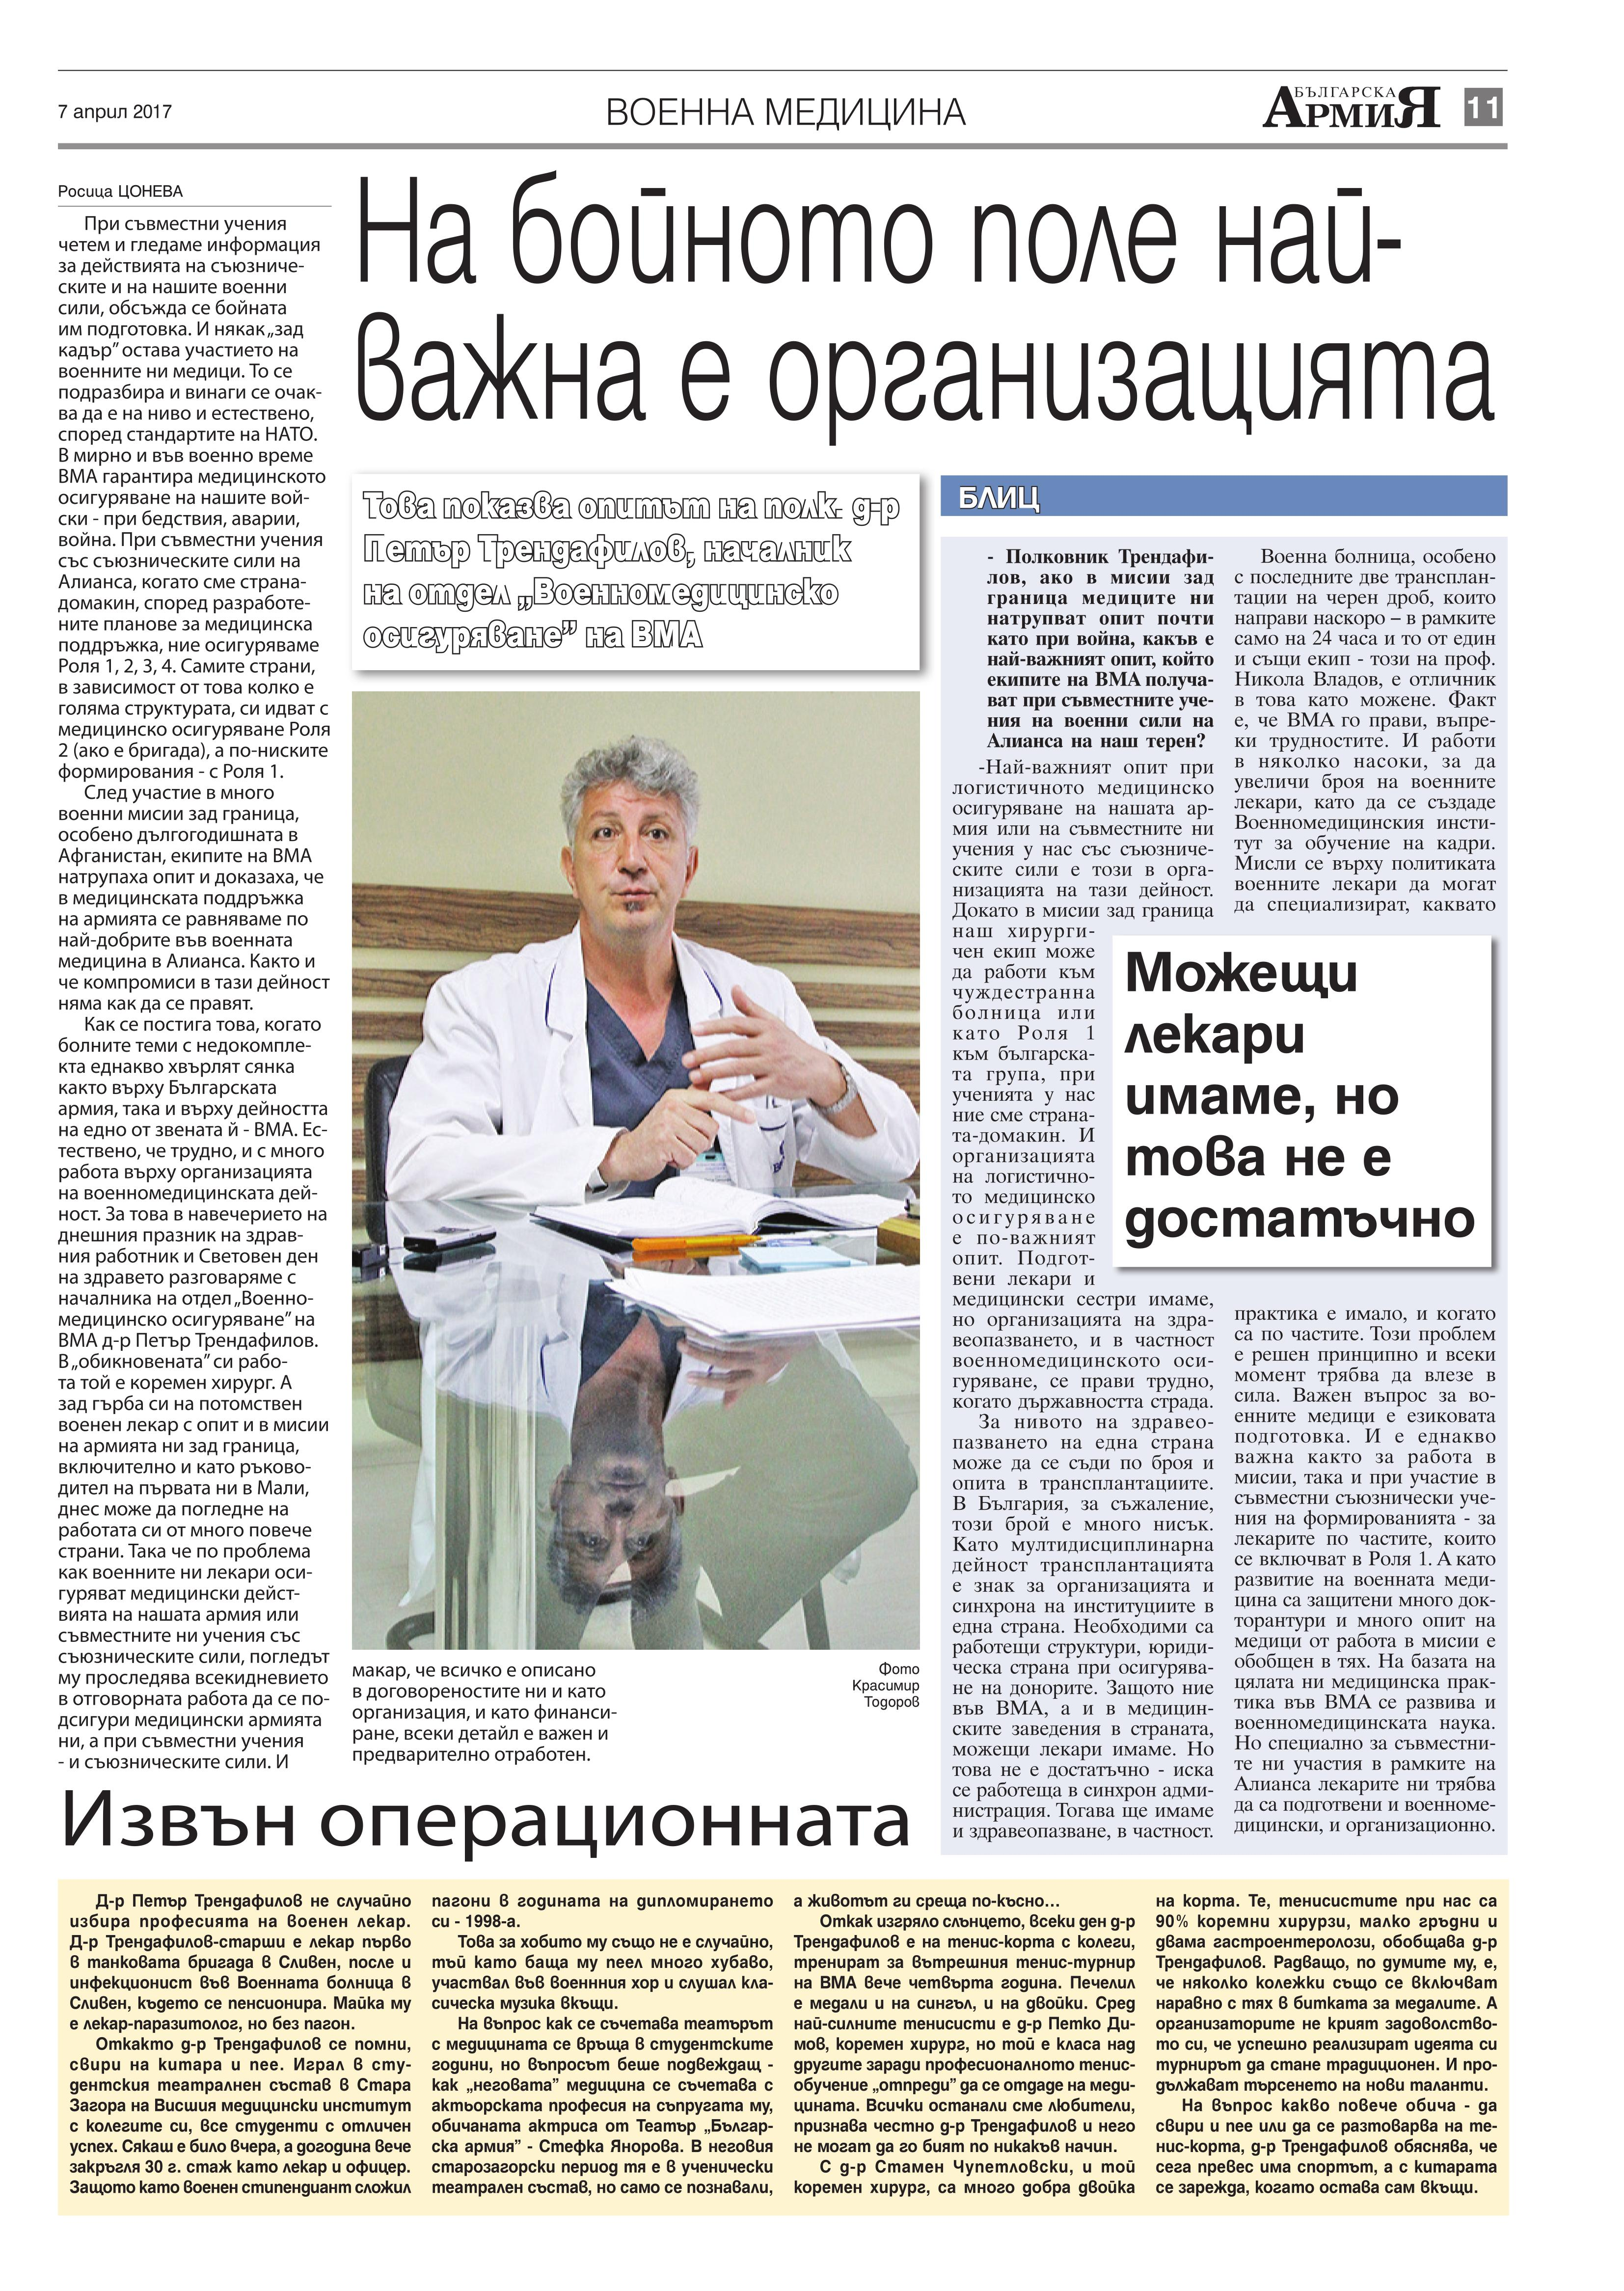 https://www.armymedia.bg/wp-content/uploads/2015/06/11.page1_-18.jpg